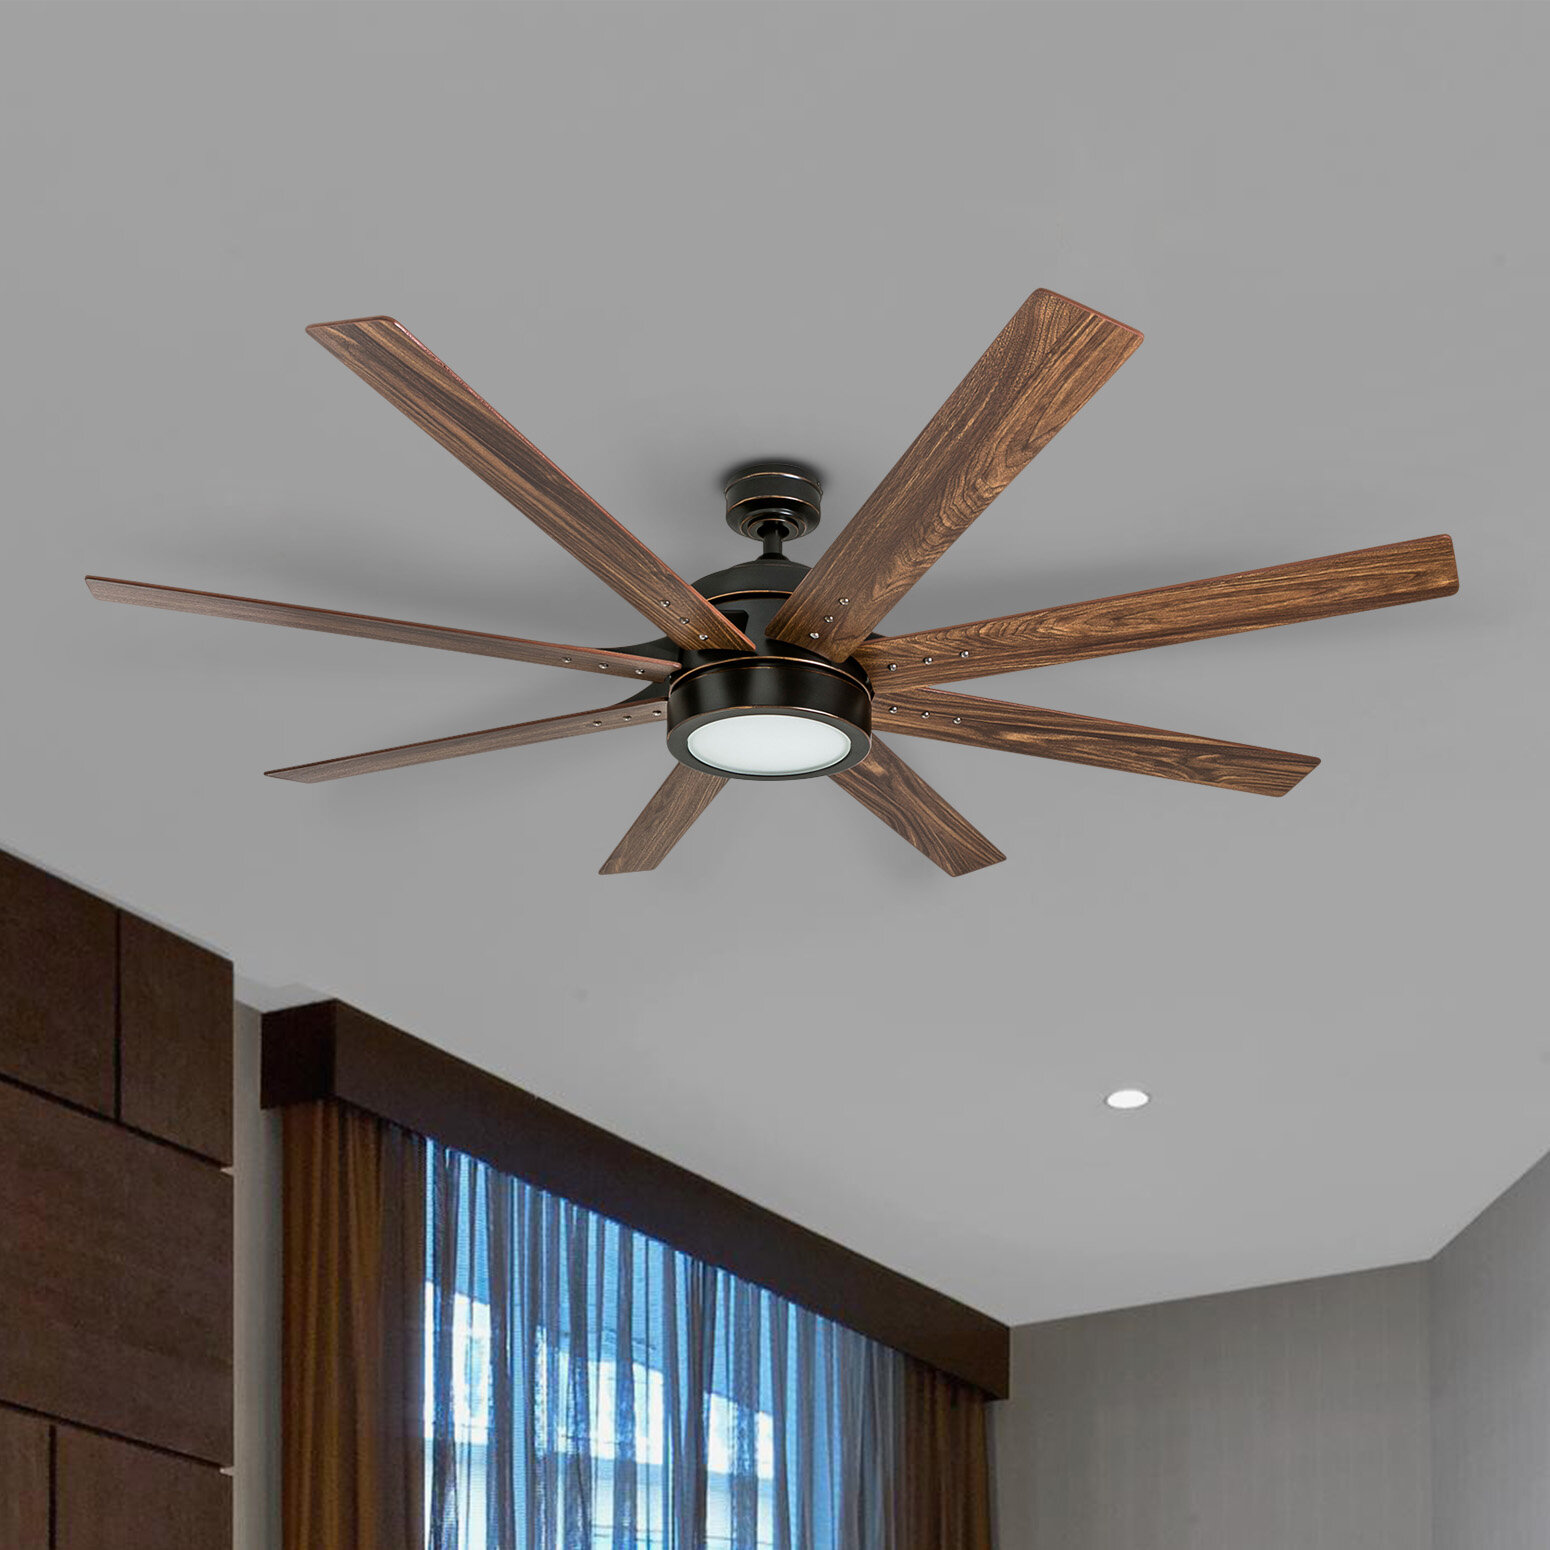 Wrought Studio 62 Centre Market Place 8 Blade Led Standard Ceiling Fan With Remote Control And Light Kit Included Reviews Wayfair